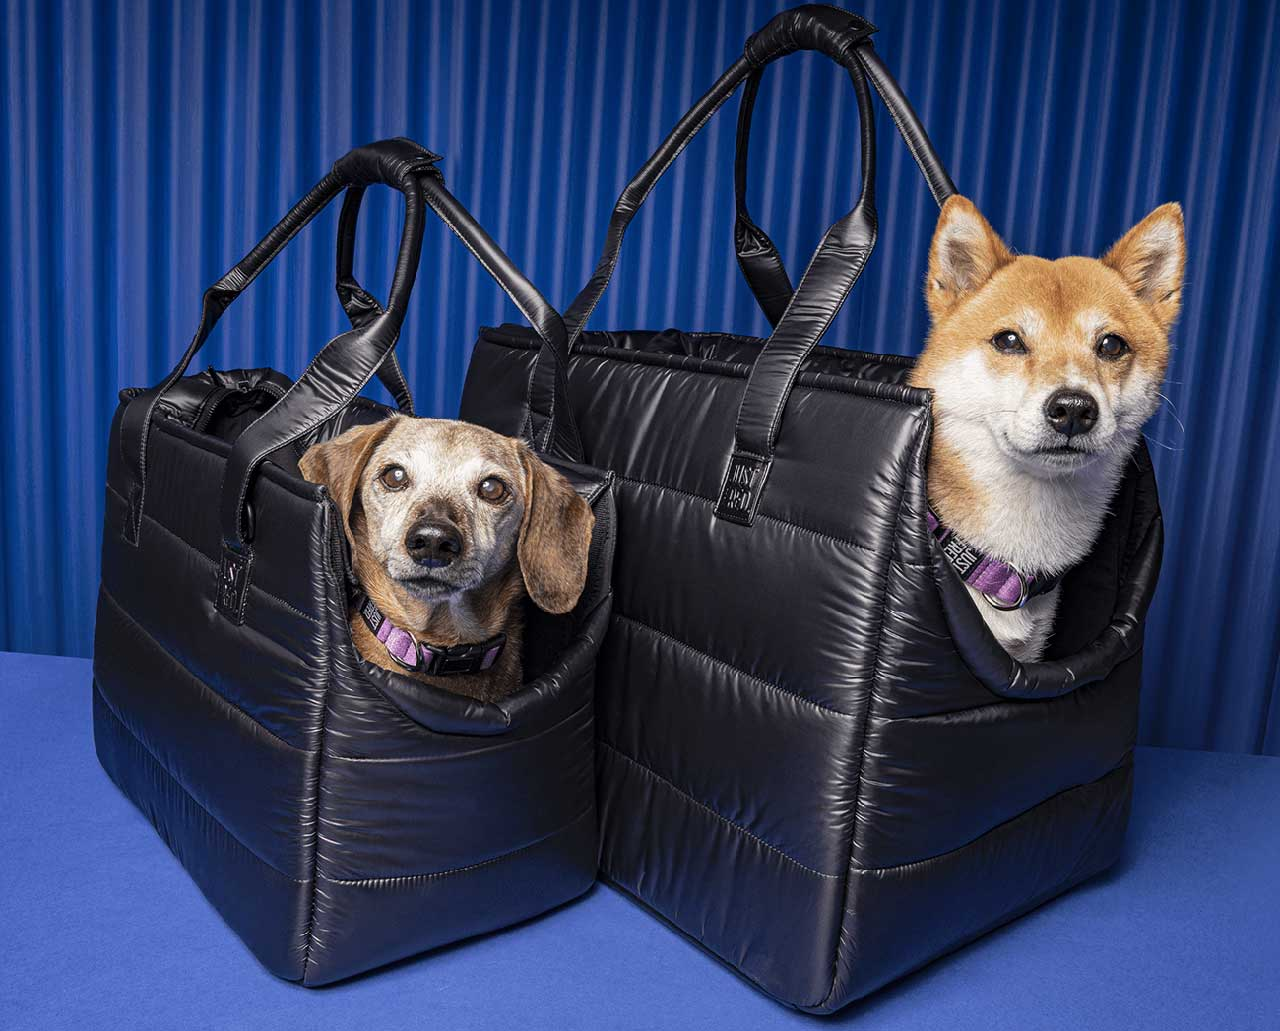 JUST FRED's Minimalist Pet Accessories Support Senior Dogs in Shelters